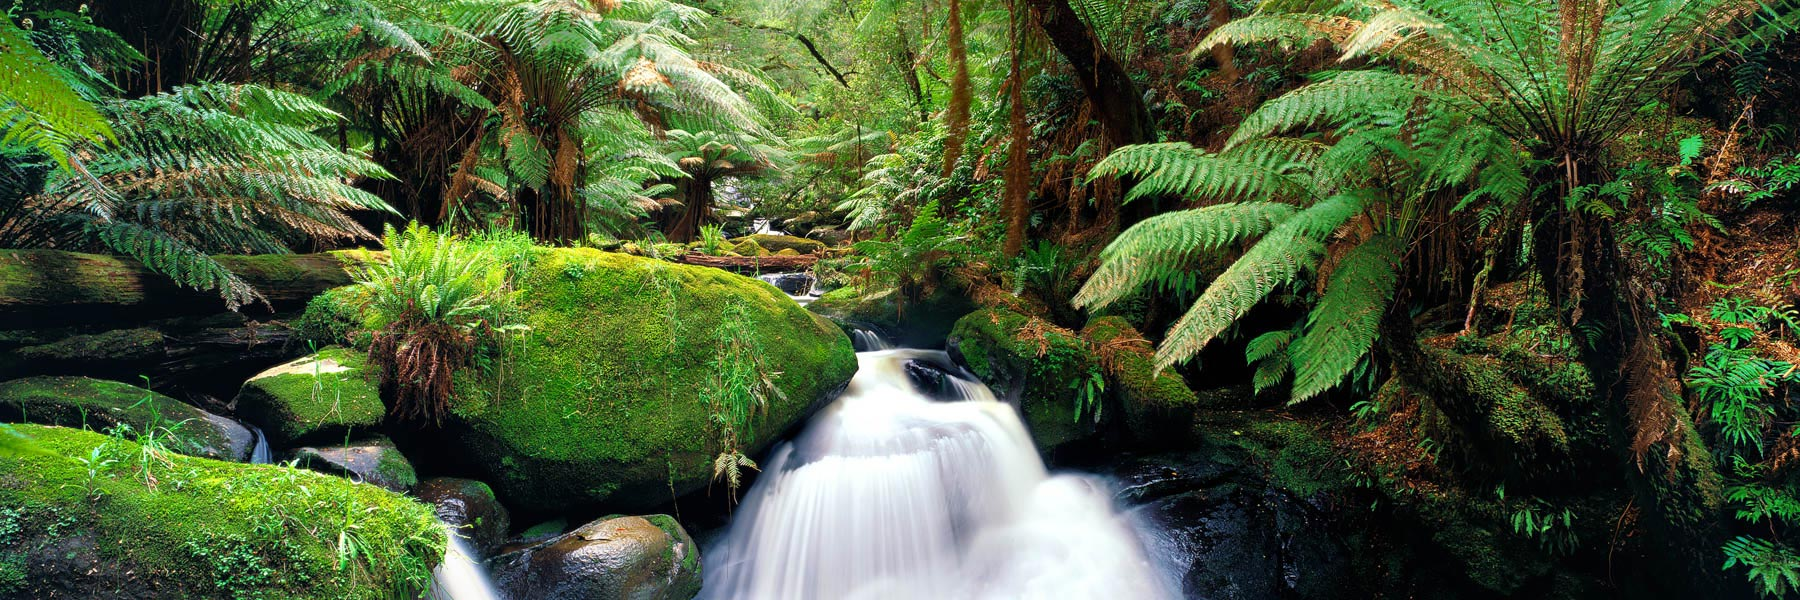 Water flows like a gossamer veil over rocks and moss, Young Creek, Victoria, Australia.